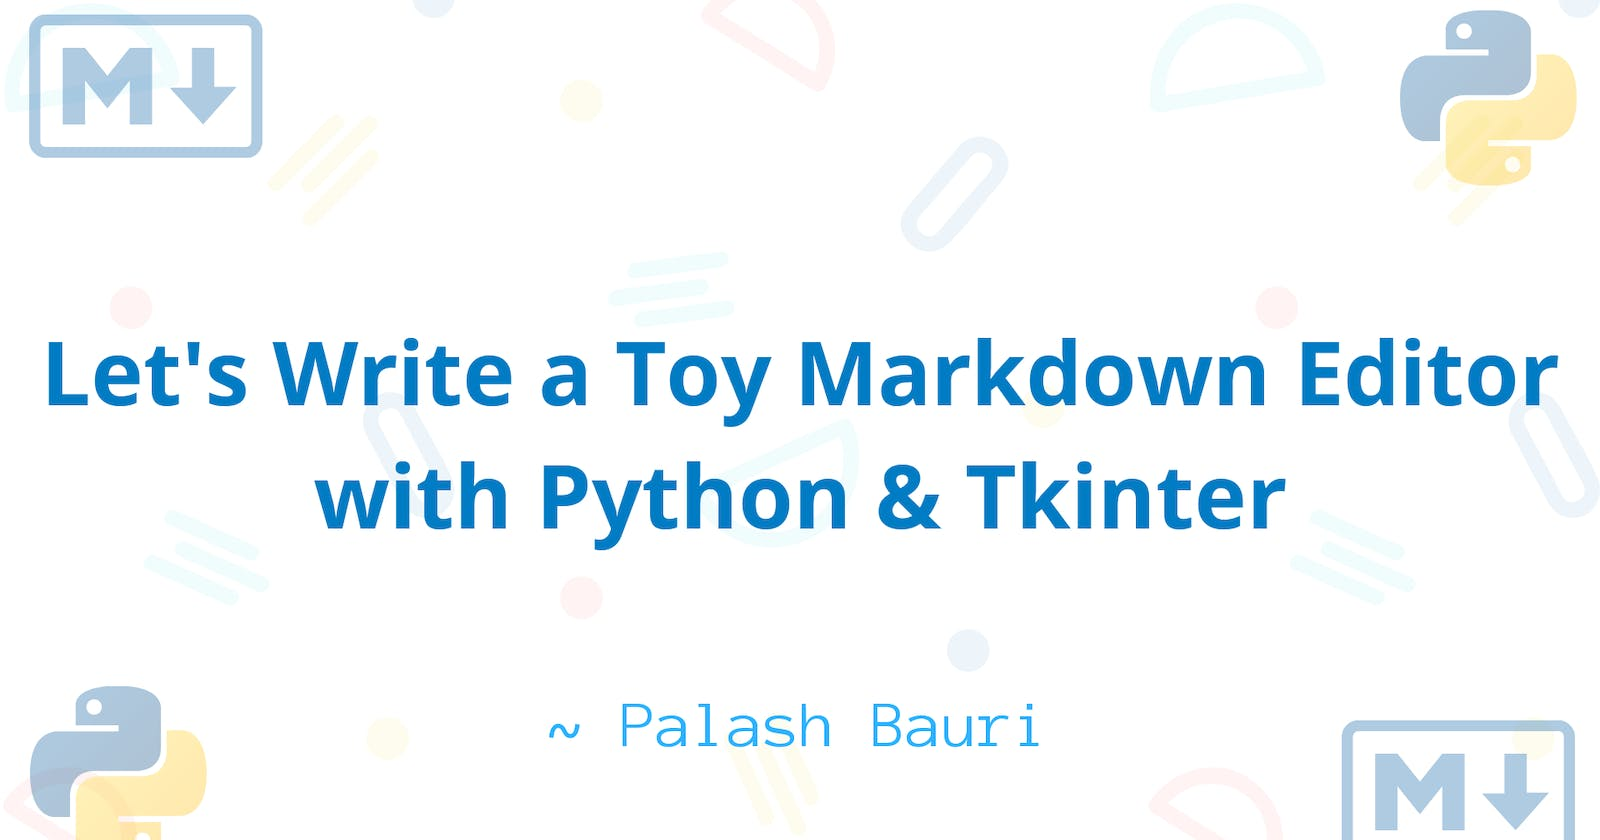 Let's Create a Toy Markdown Editor with Python Tkinter!